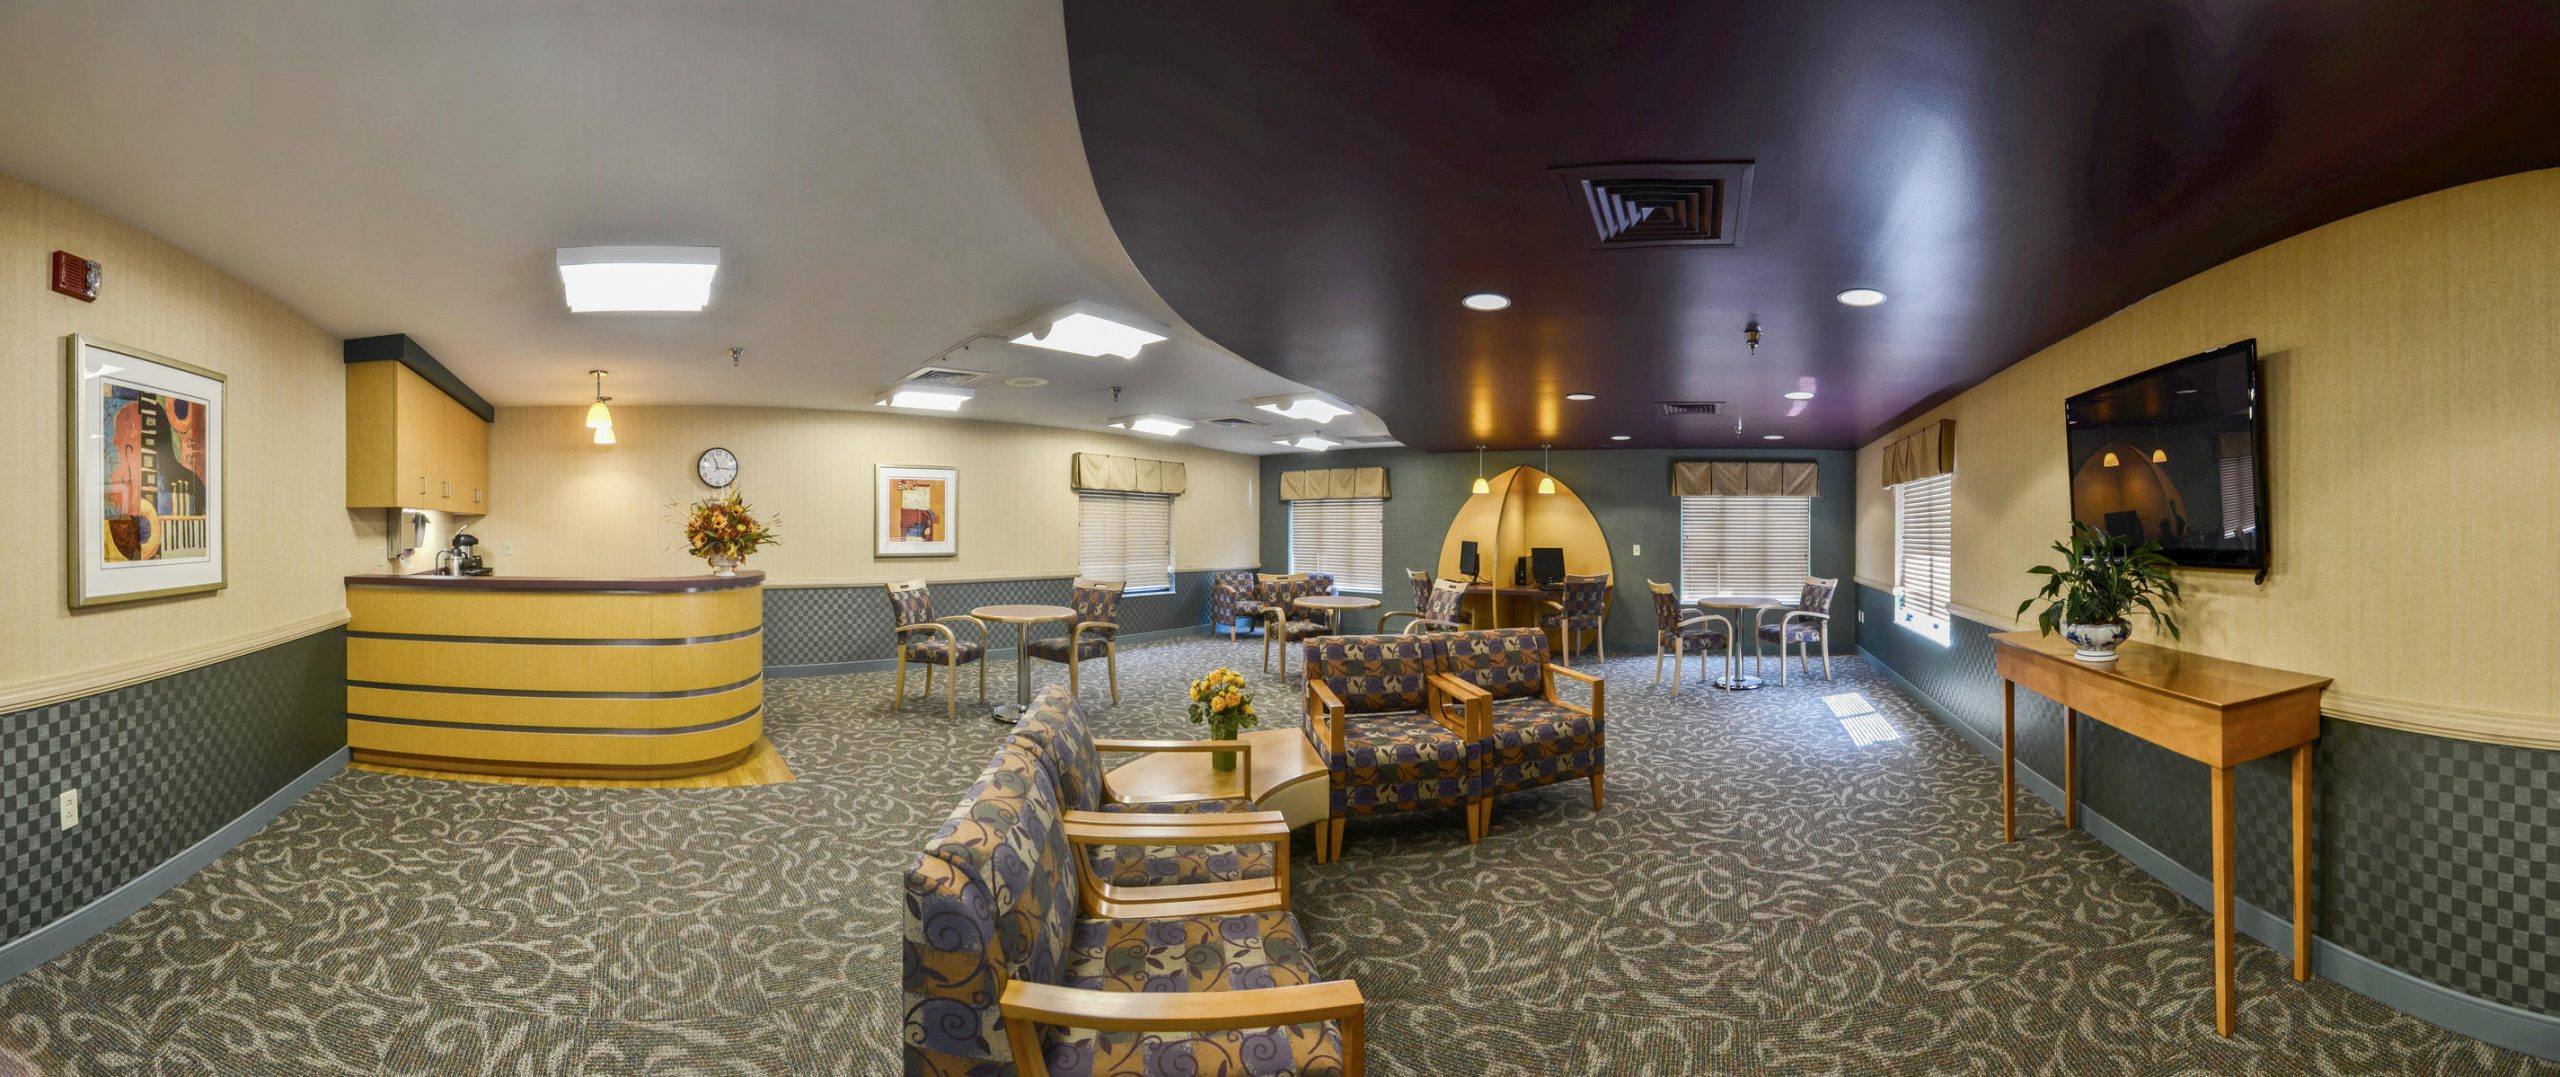 Panoramic view of Stonerise Clarksburg internet cafe with computer desks, TV area and kitchenette